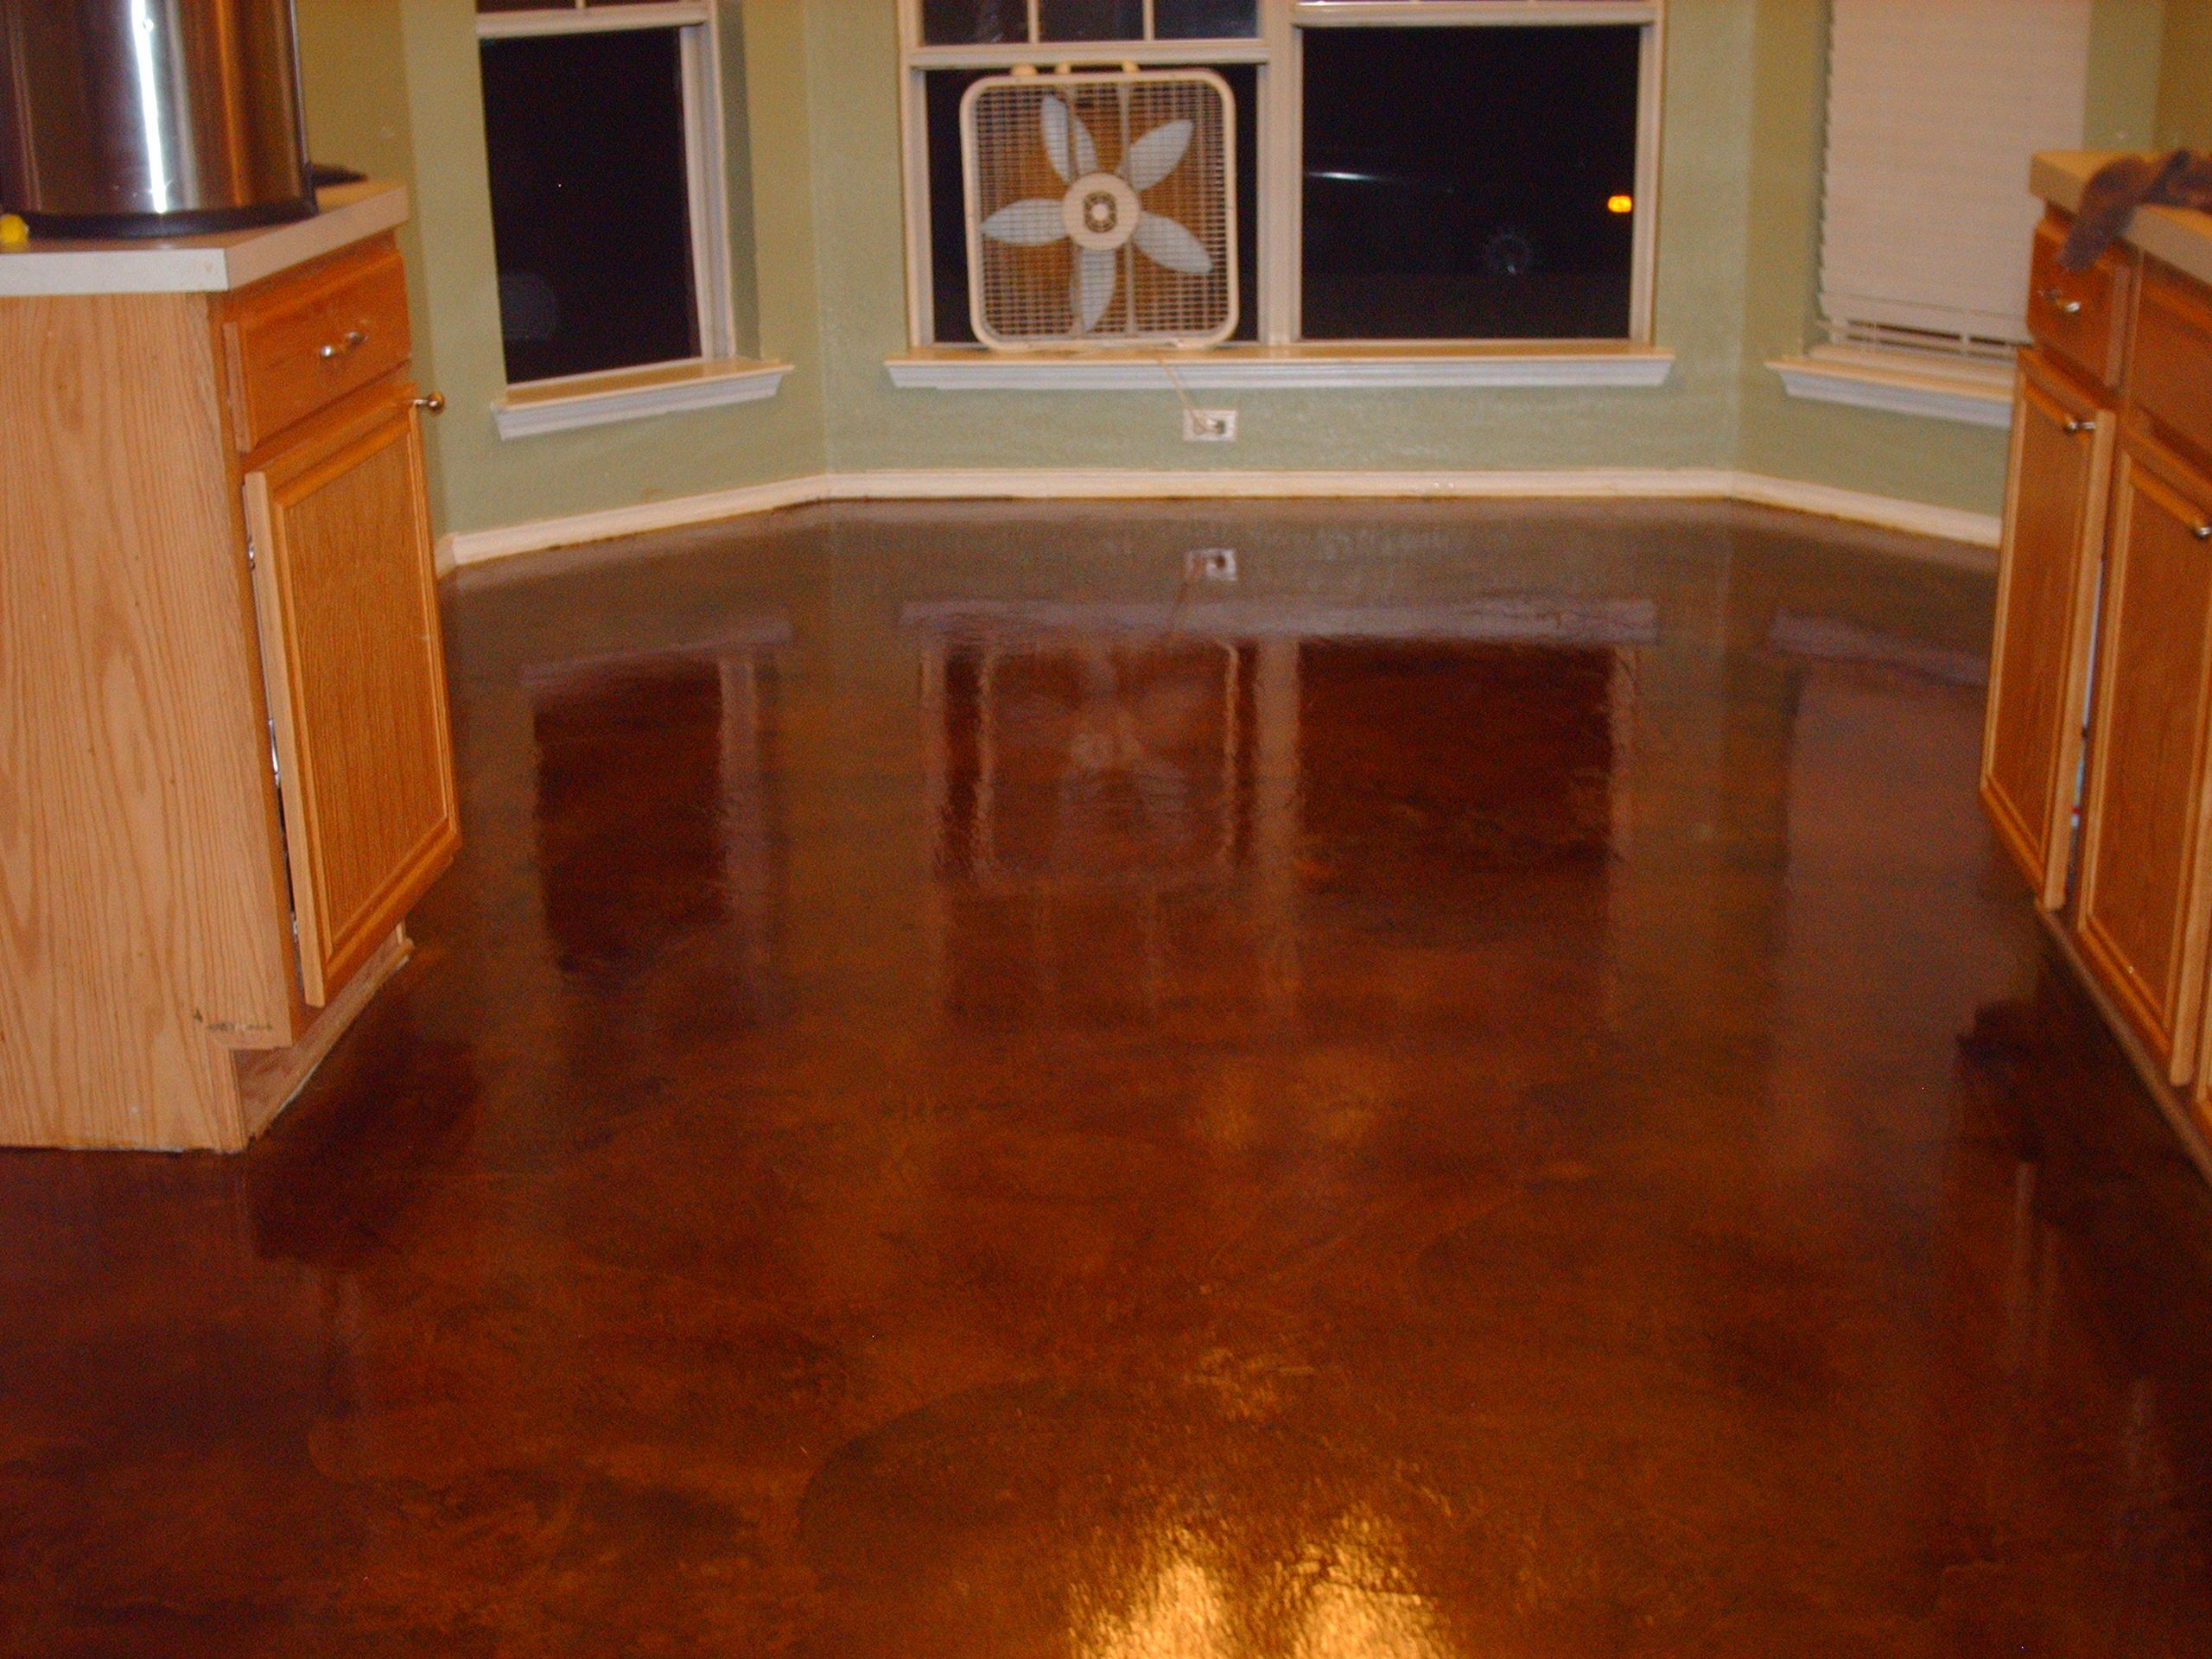 Exceptional Make ((UGLY)) Beautifull Concrete Stain, Epoxy Floors, Countertops!